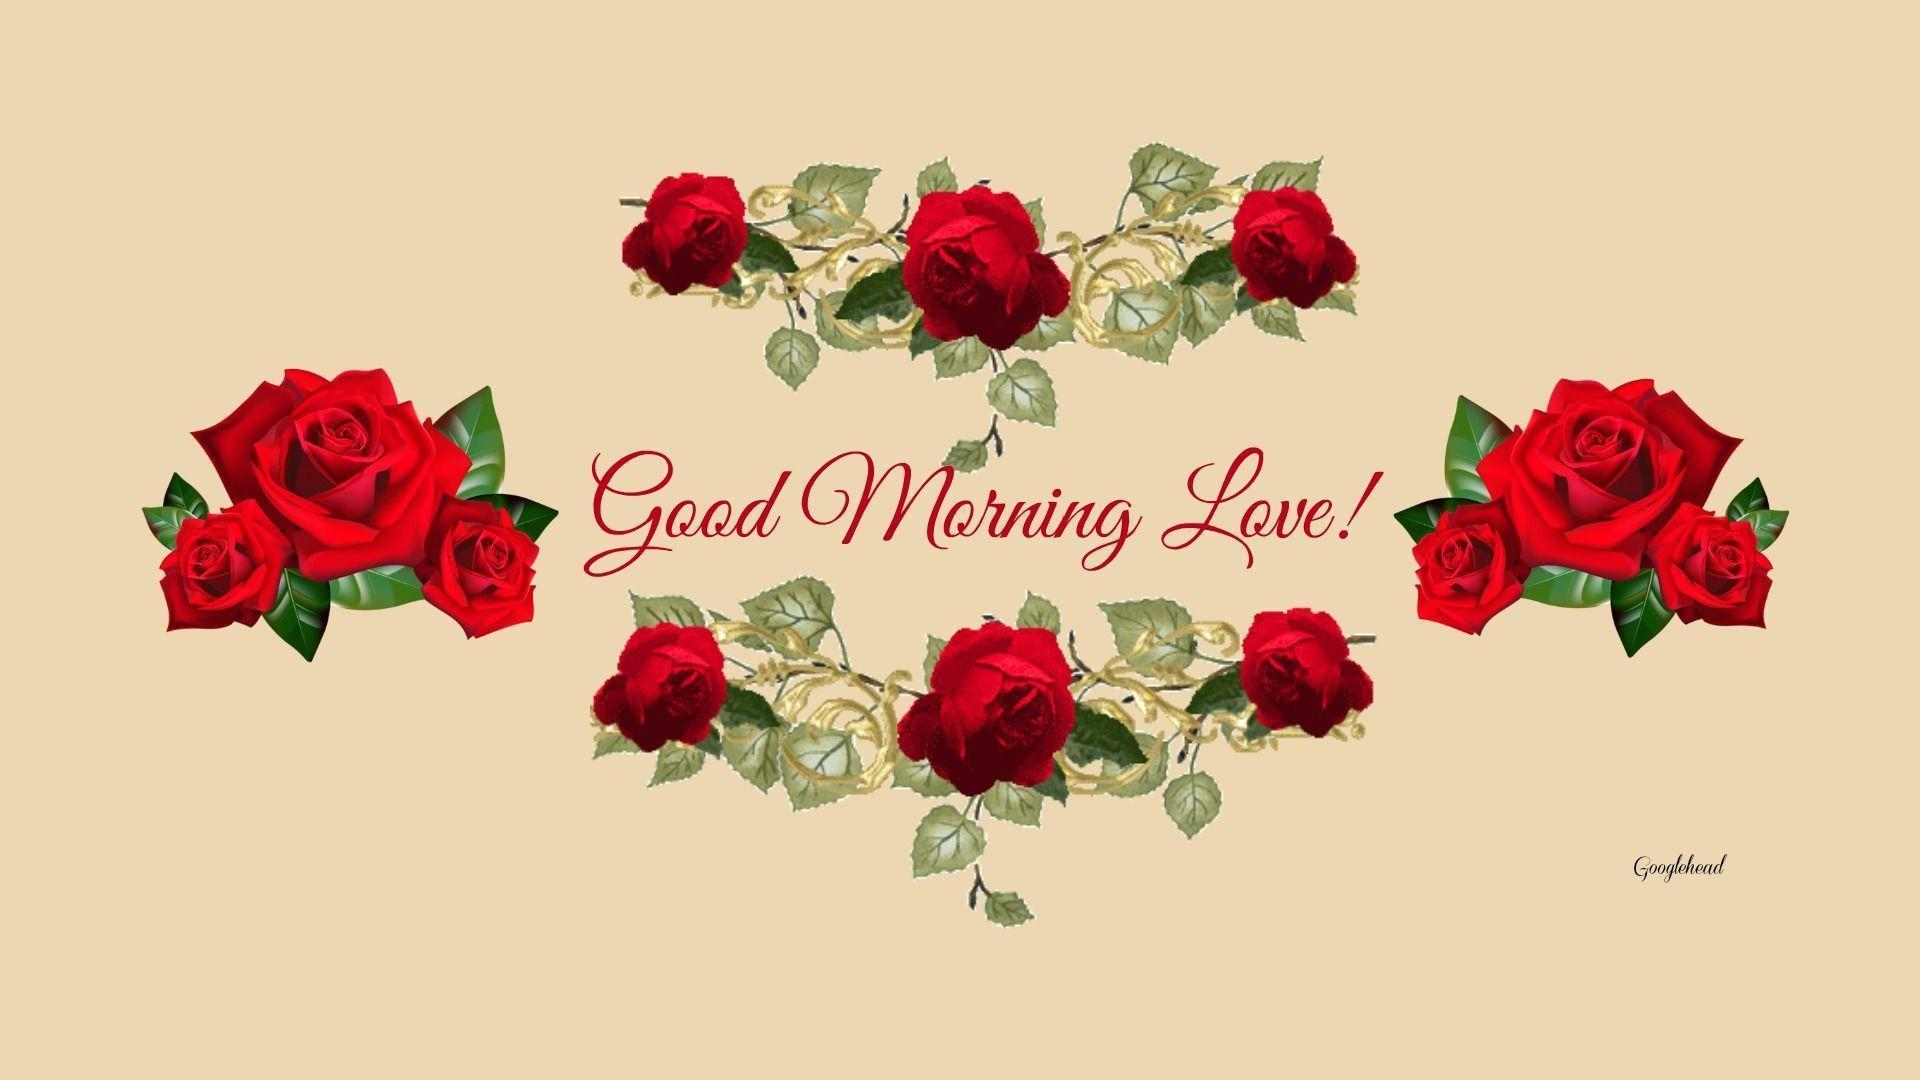 Love Good Morning Kiss Wallpaper : Wallpapers Good Morning Love - Wallpaper cave